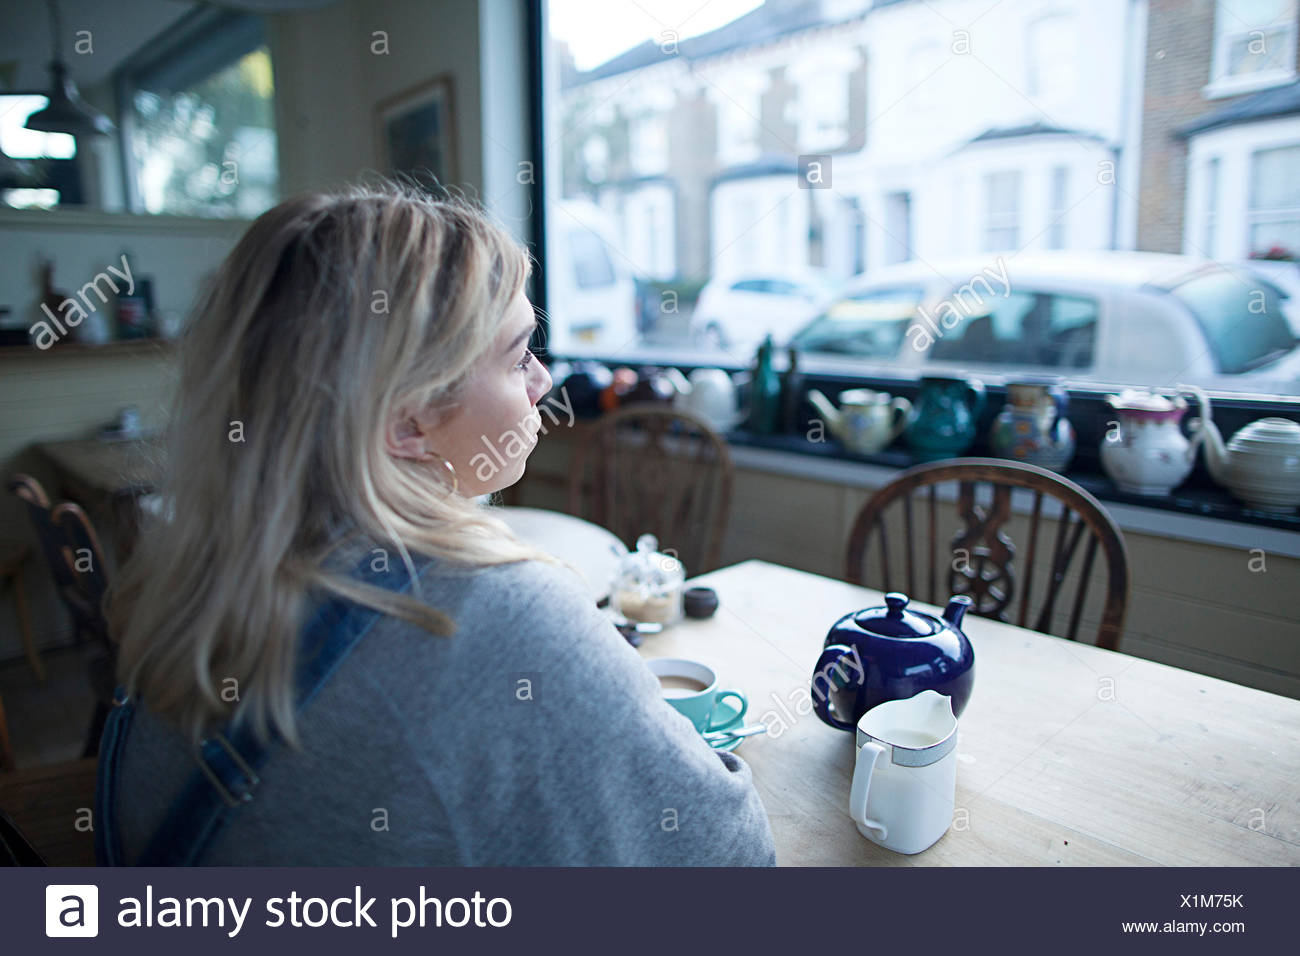 Young woman sitting in cafe, cup of tea and teapot on table, looking out of window - Stock Image